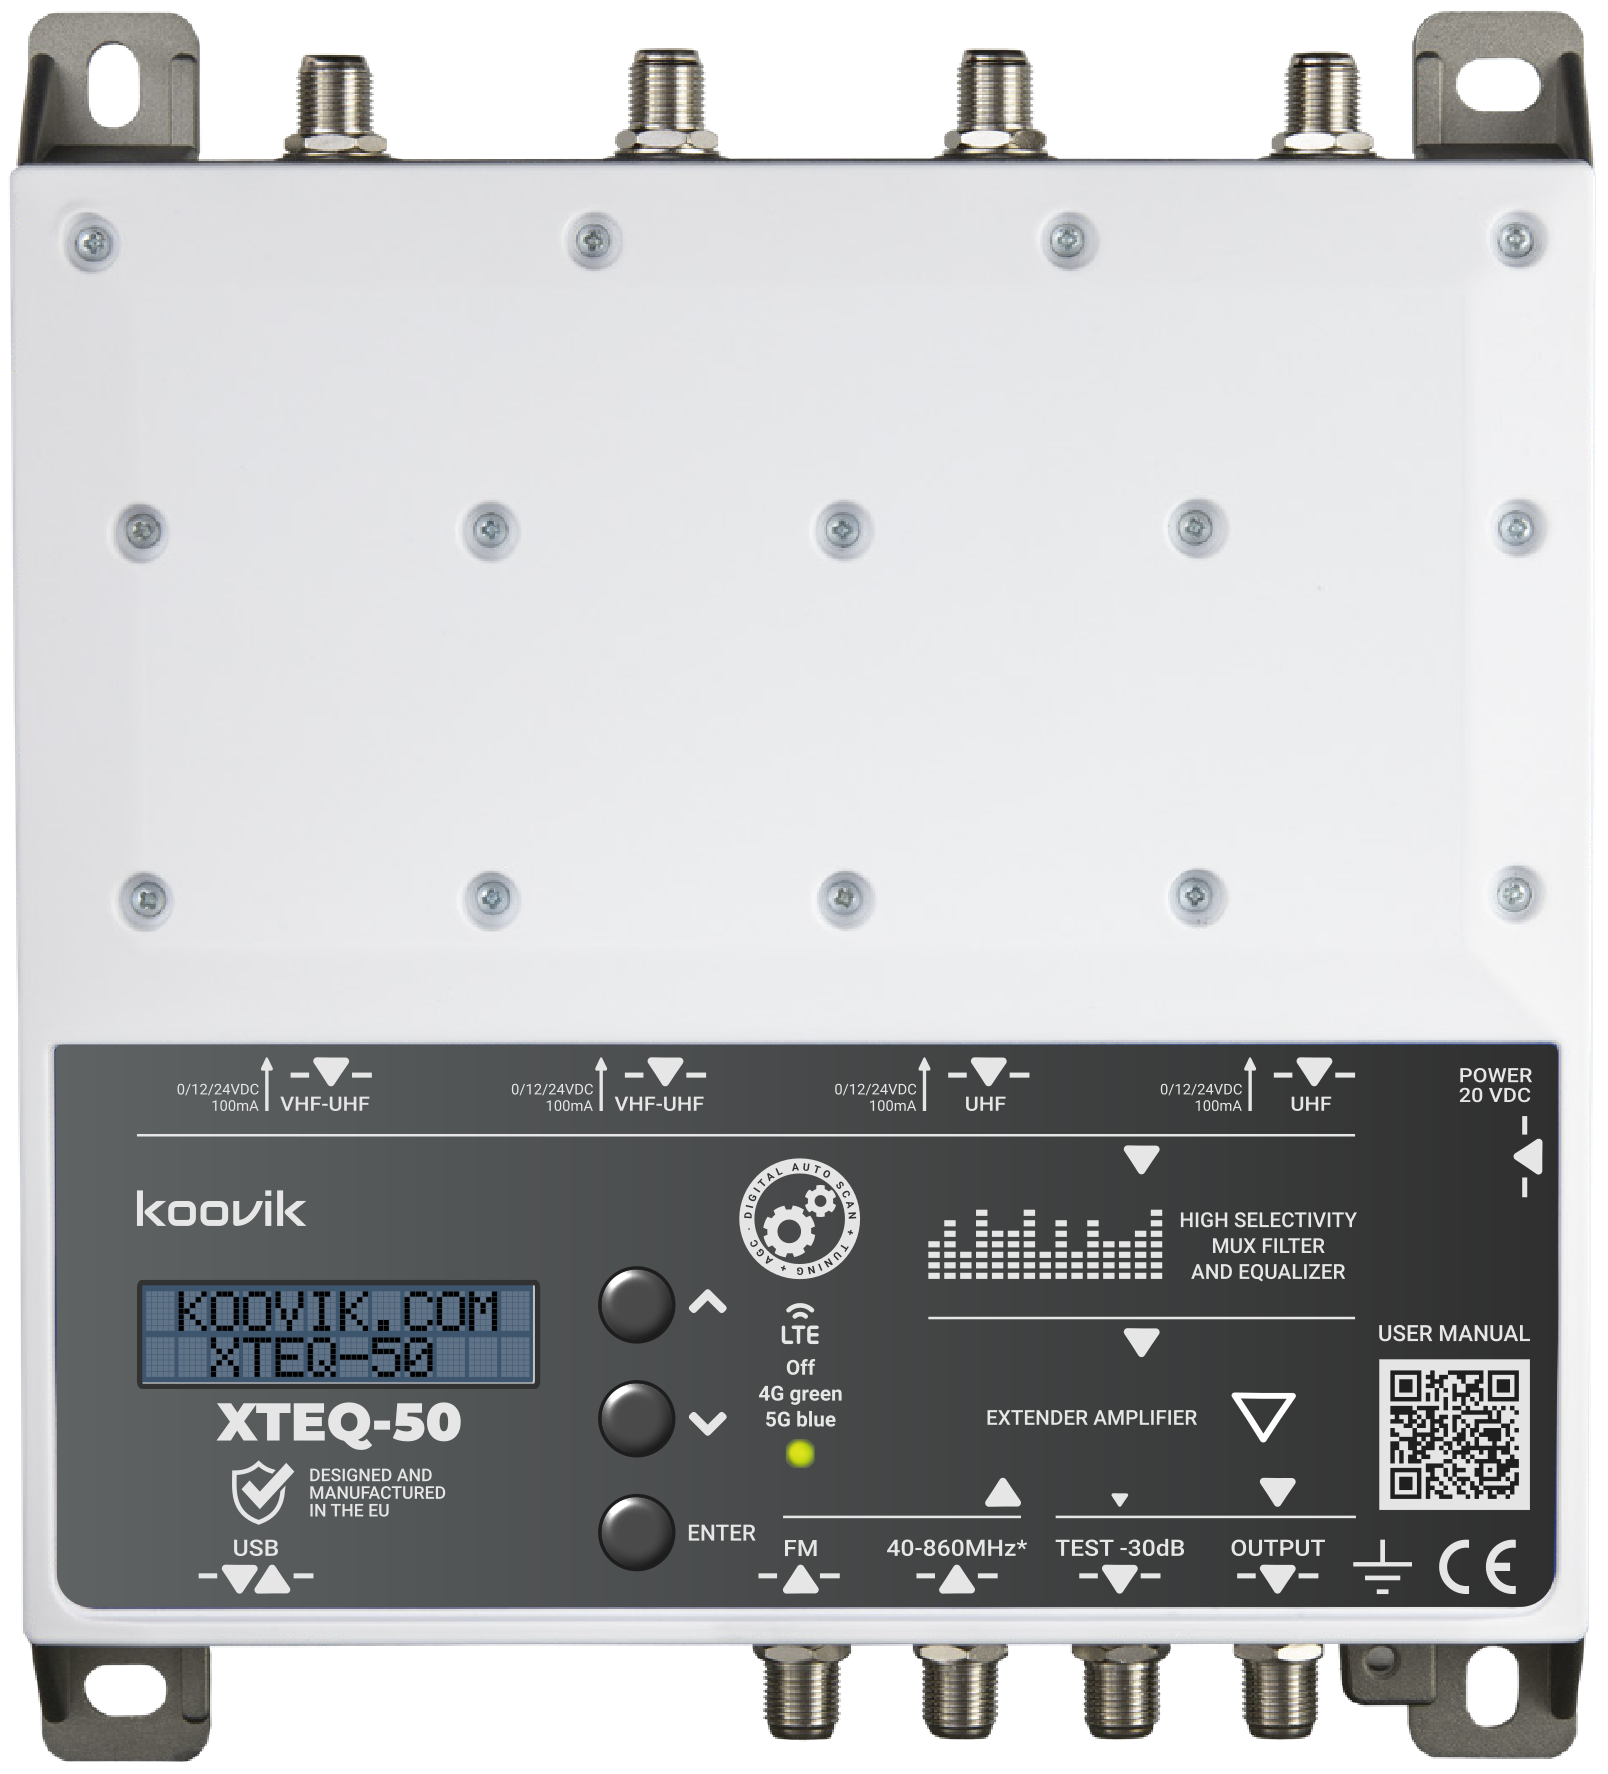 XTEQ-50 ultra selective filter equalizer and MATV amplifier